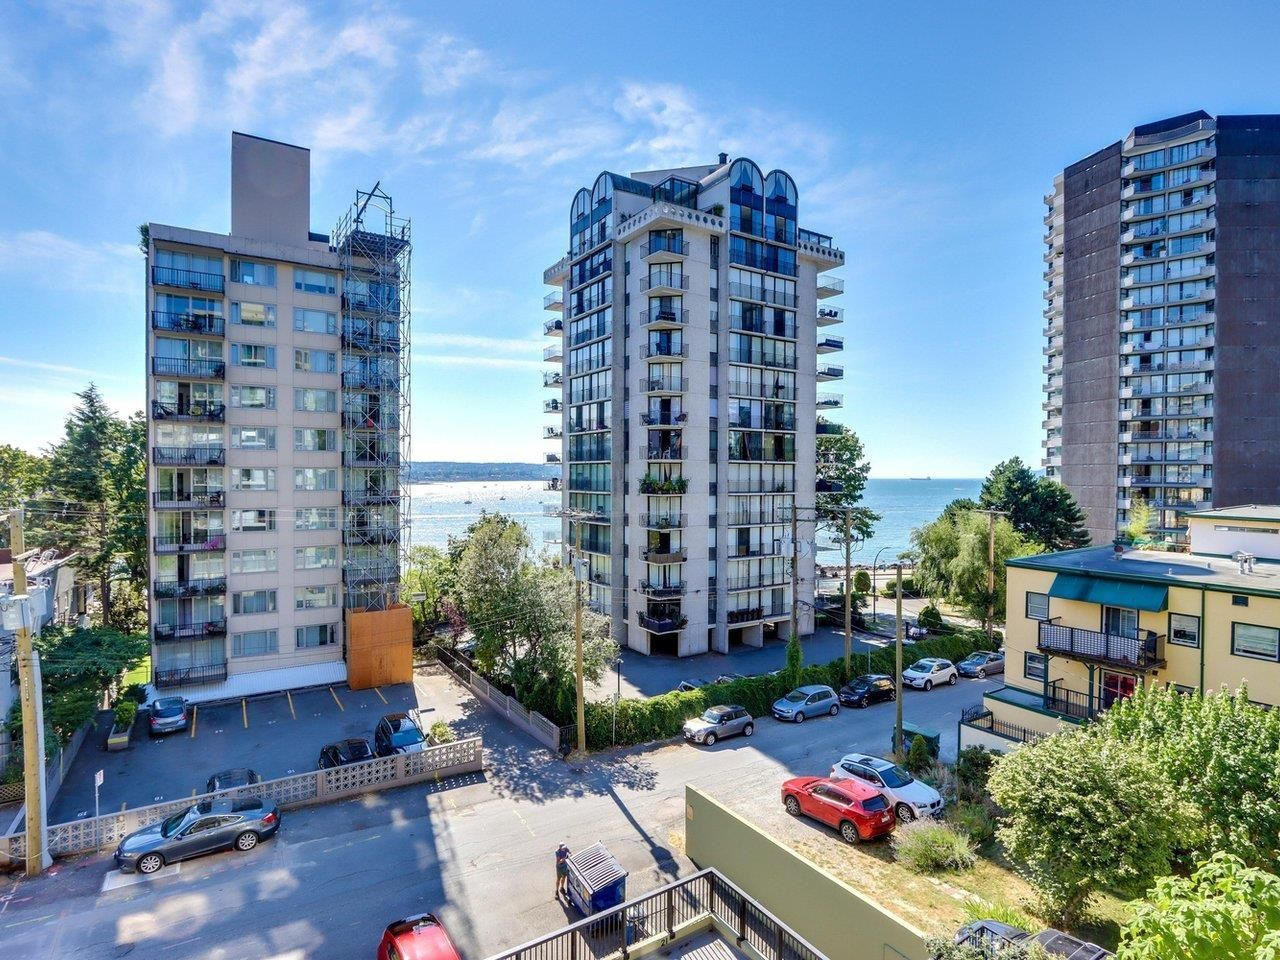 """Main Photo: 404 1534 HARWOOD Street in Vancouver: West End VW Condo for sale in """"St Pierre"""" (Vancouver West)  : MLS®# R2609821"""